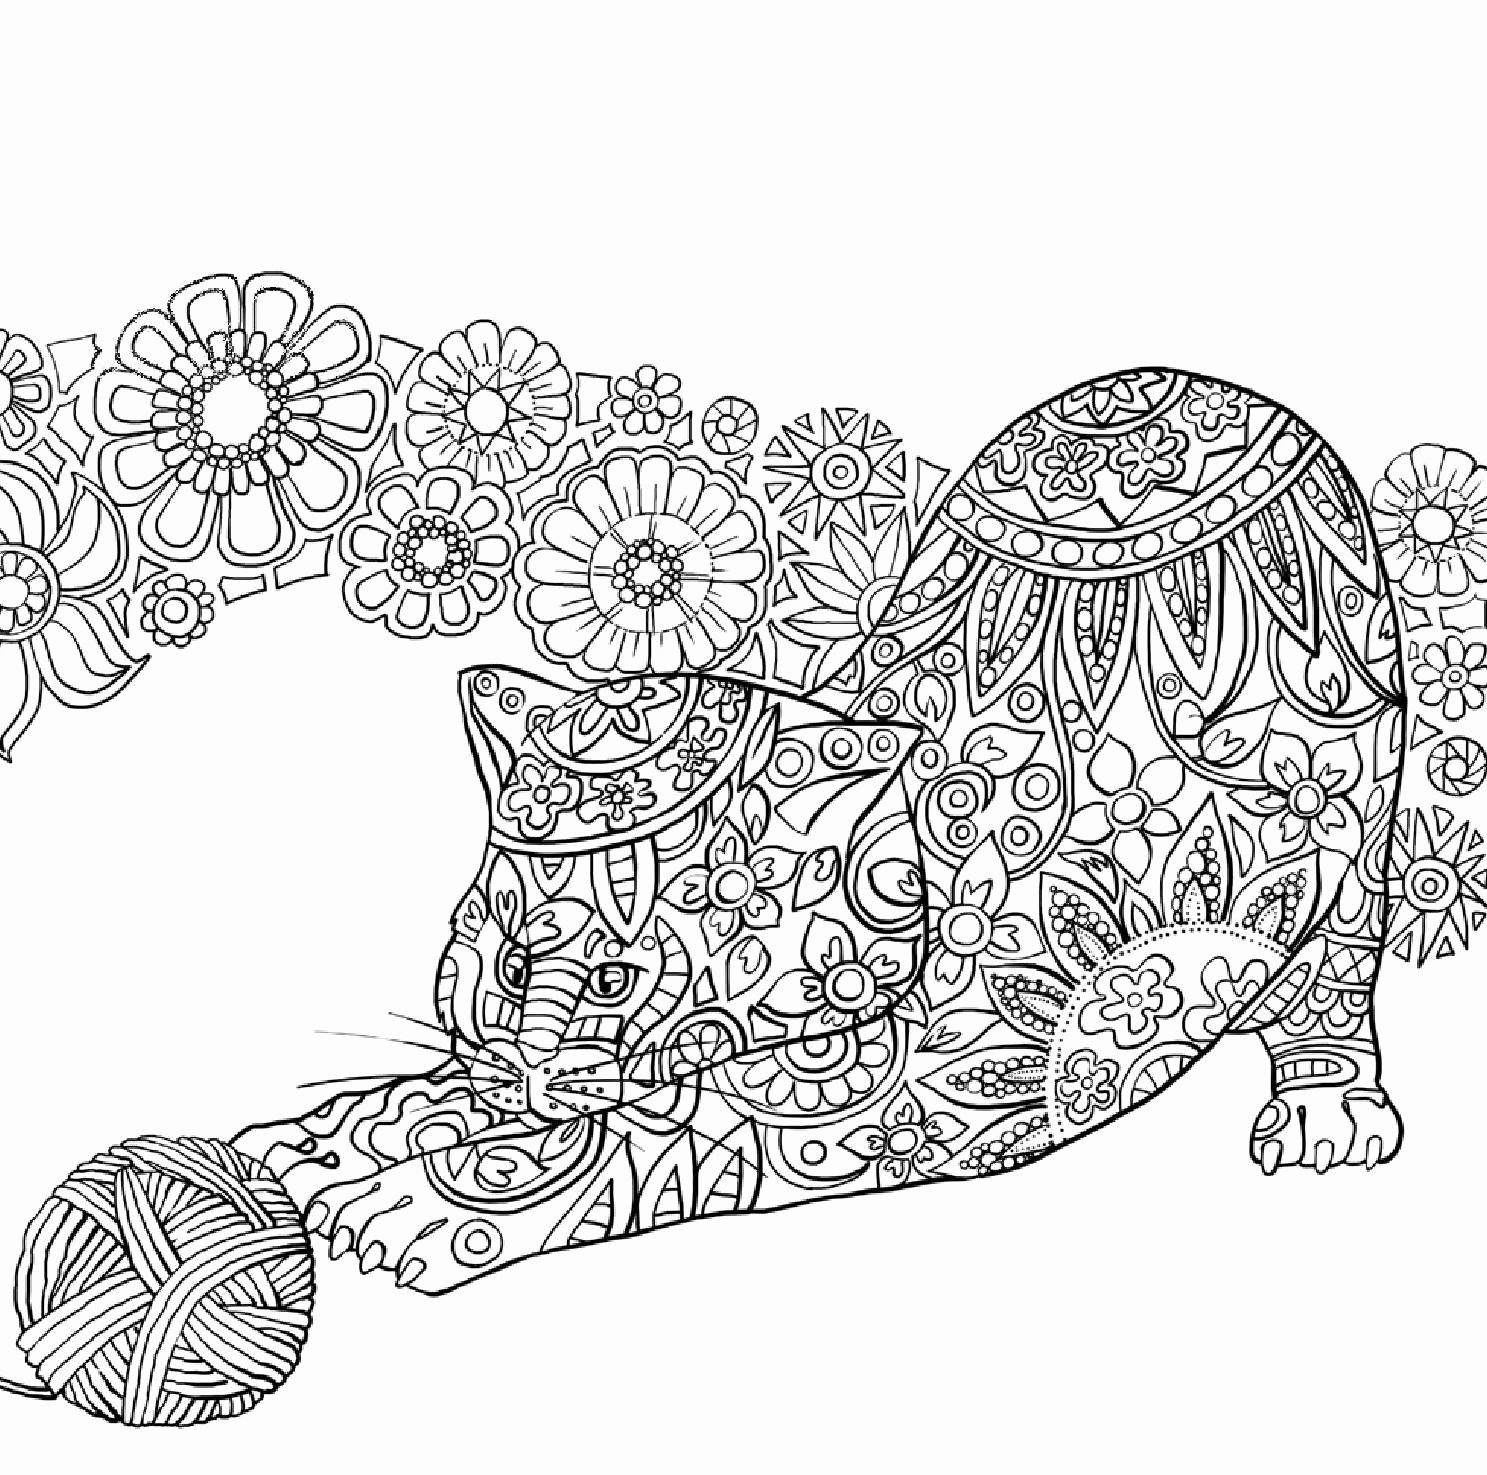 18 Coloring Pages Desserts Animal Coloring Pages Mandala Coloring Pages Cat Coloring Page